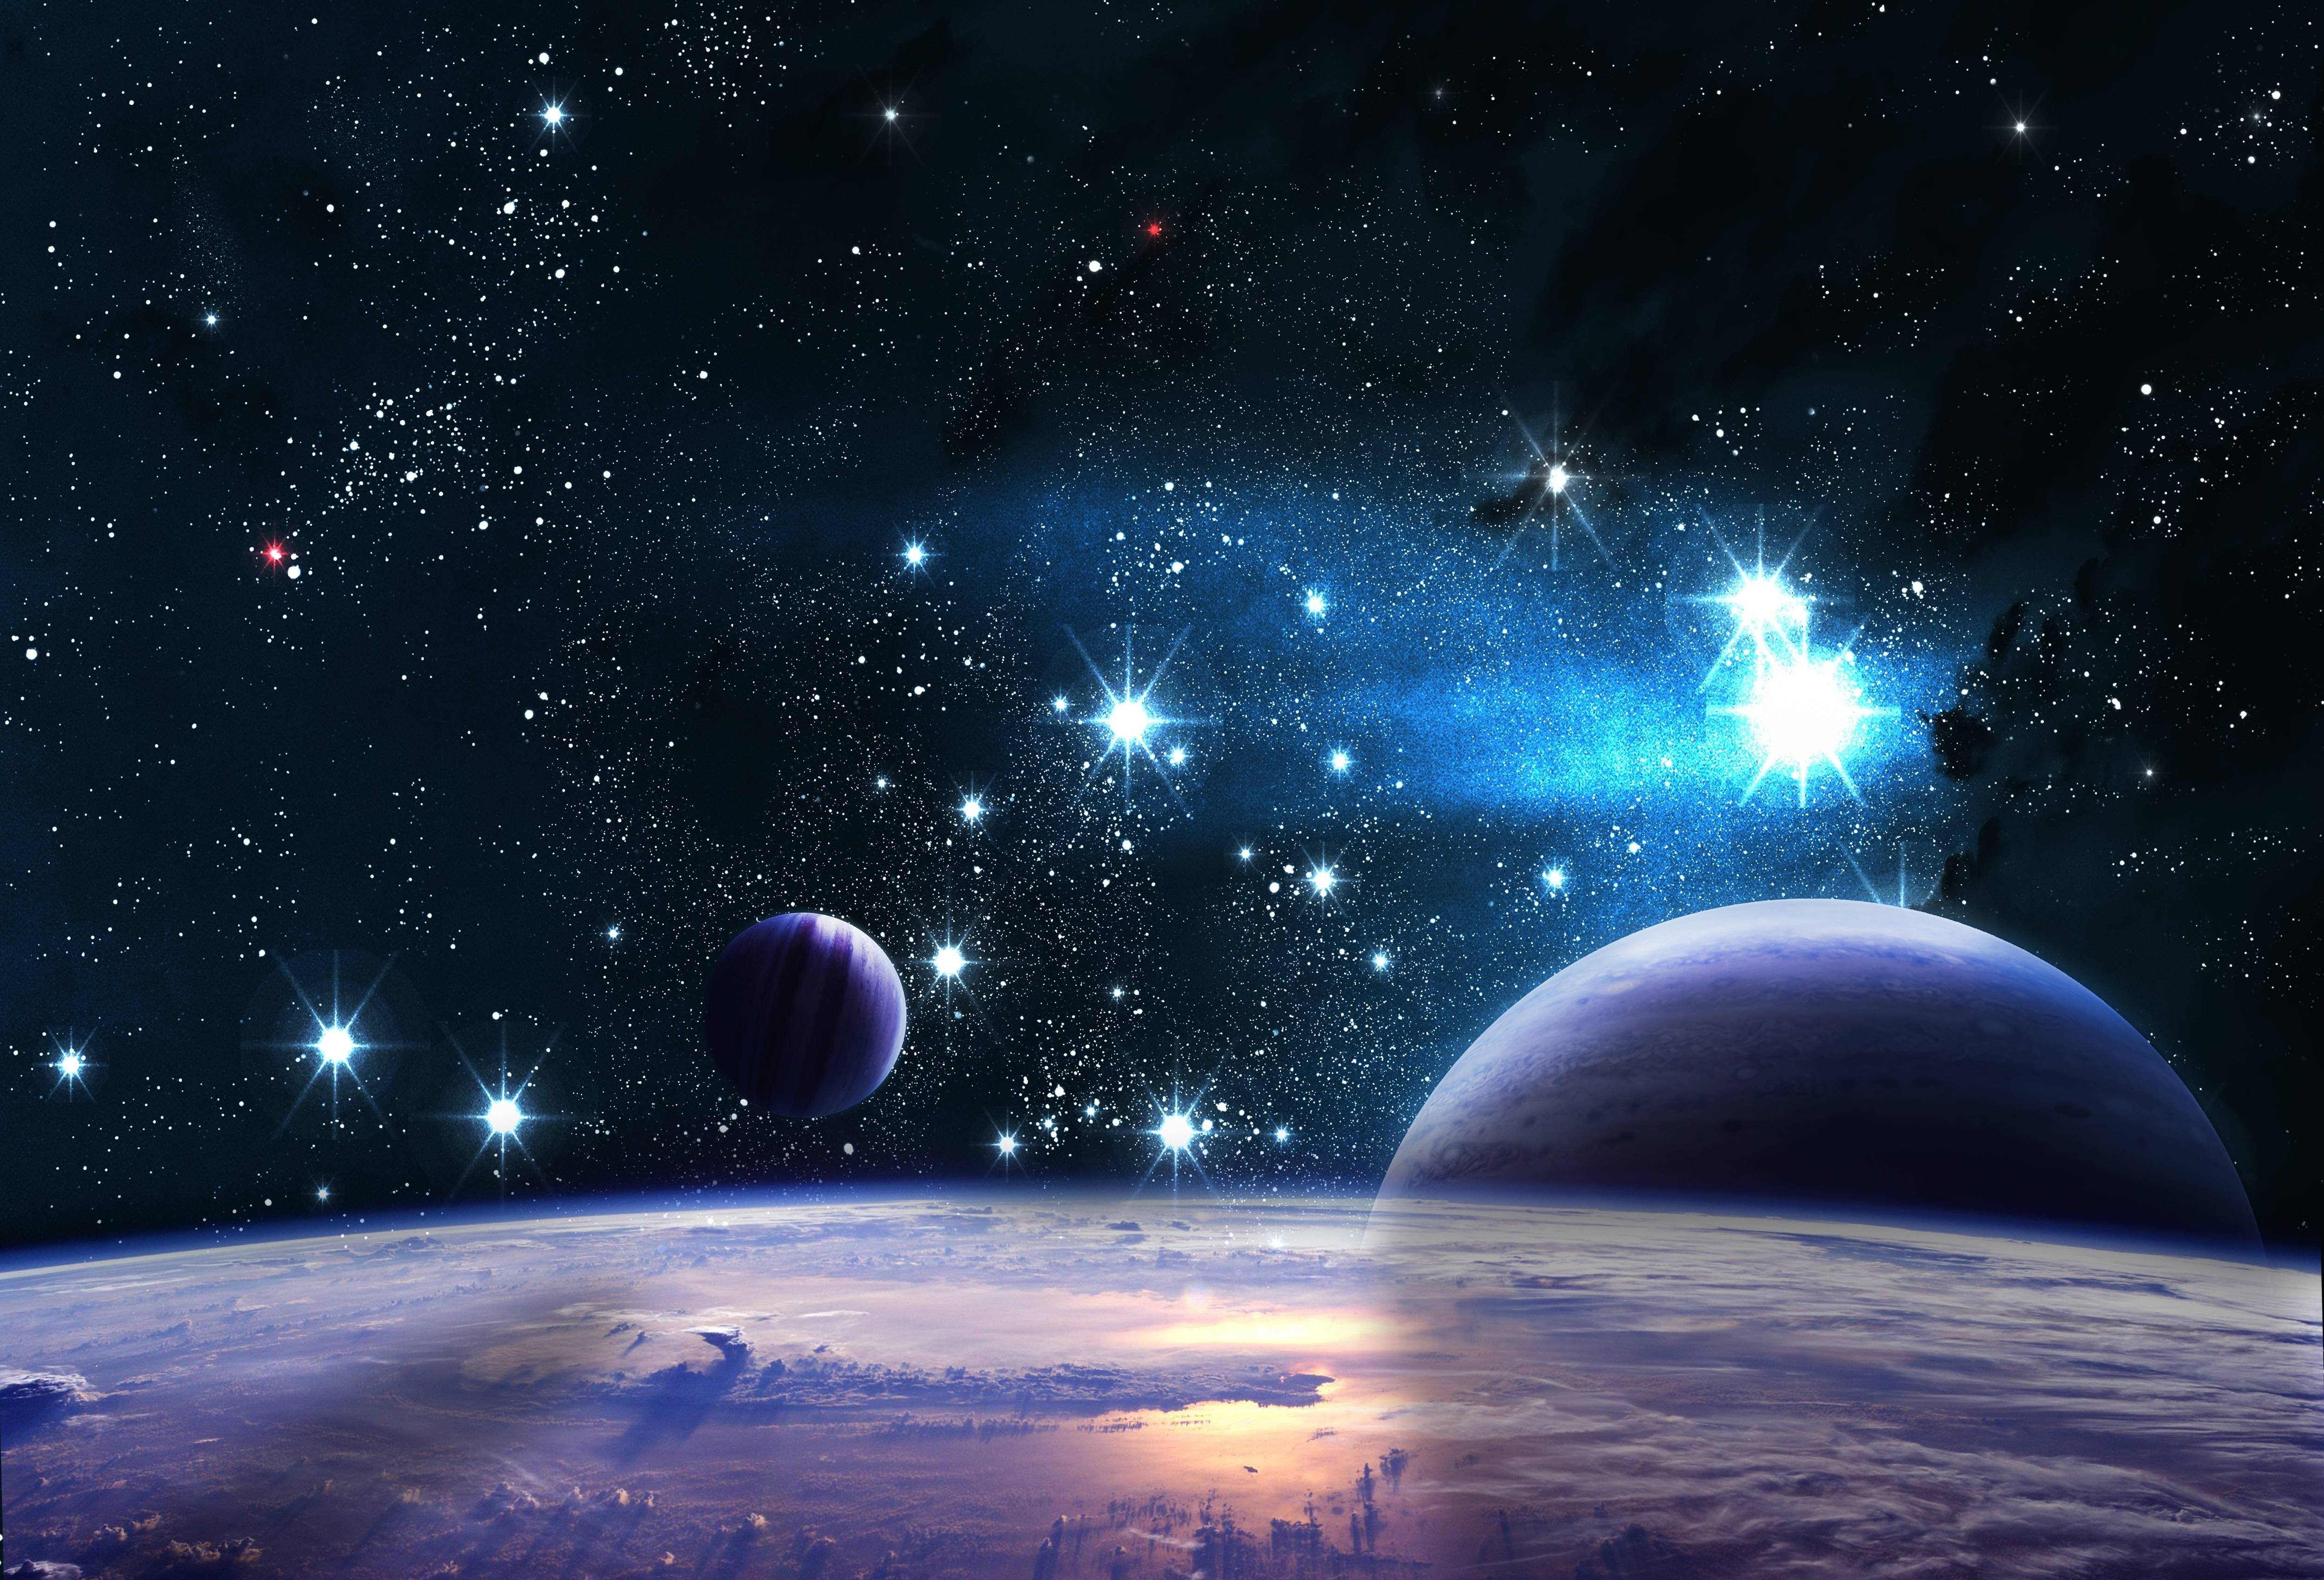 Reflection space planet stars wallpaper | 5000x3400 ...